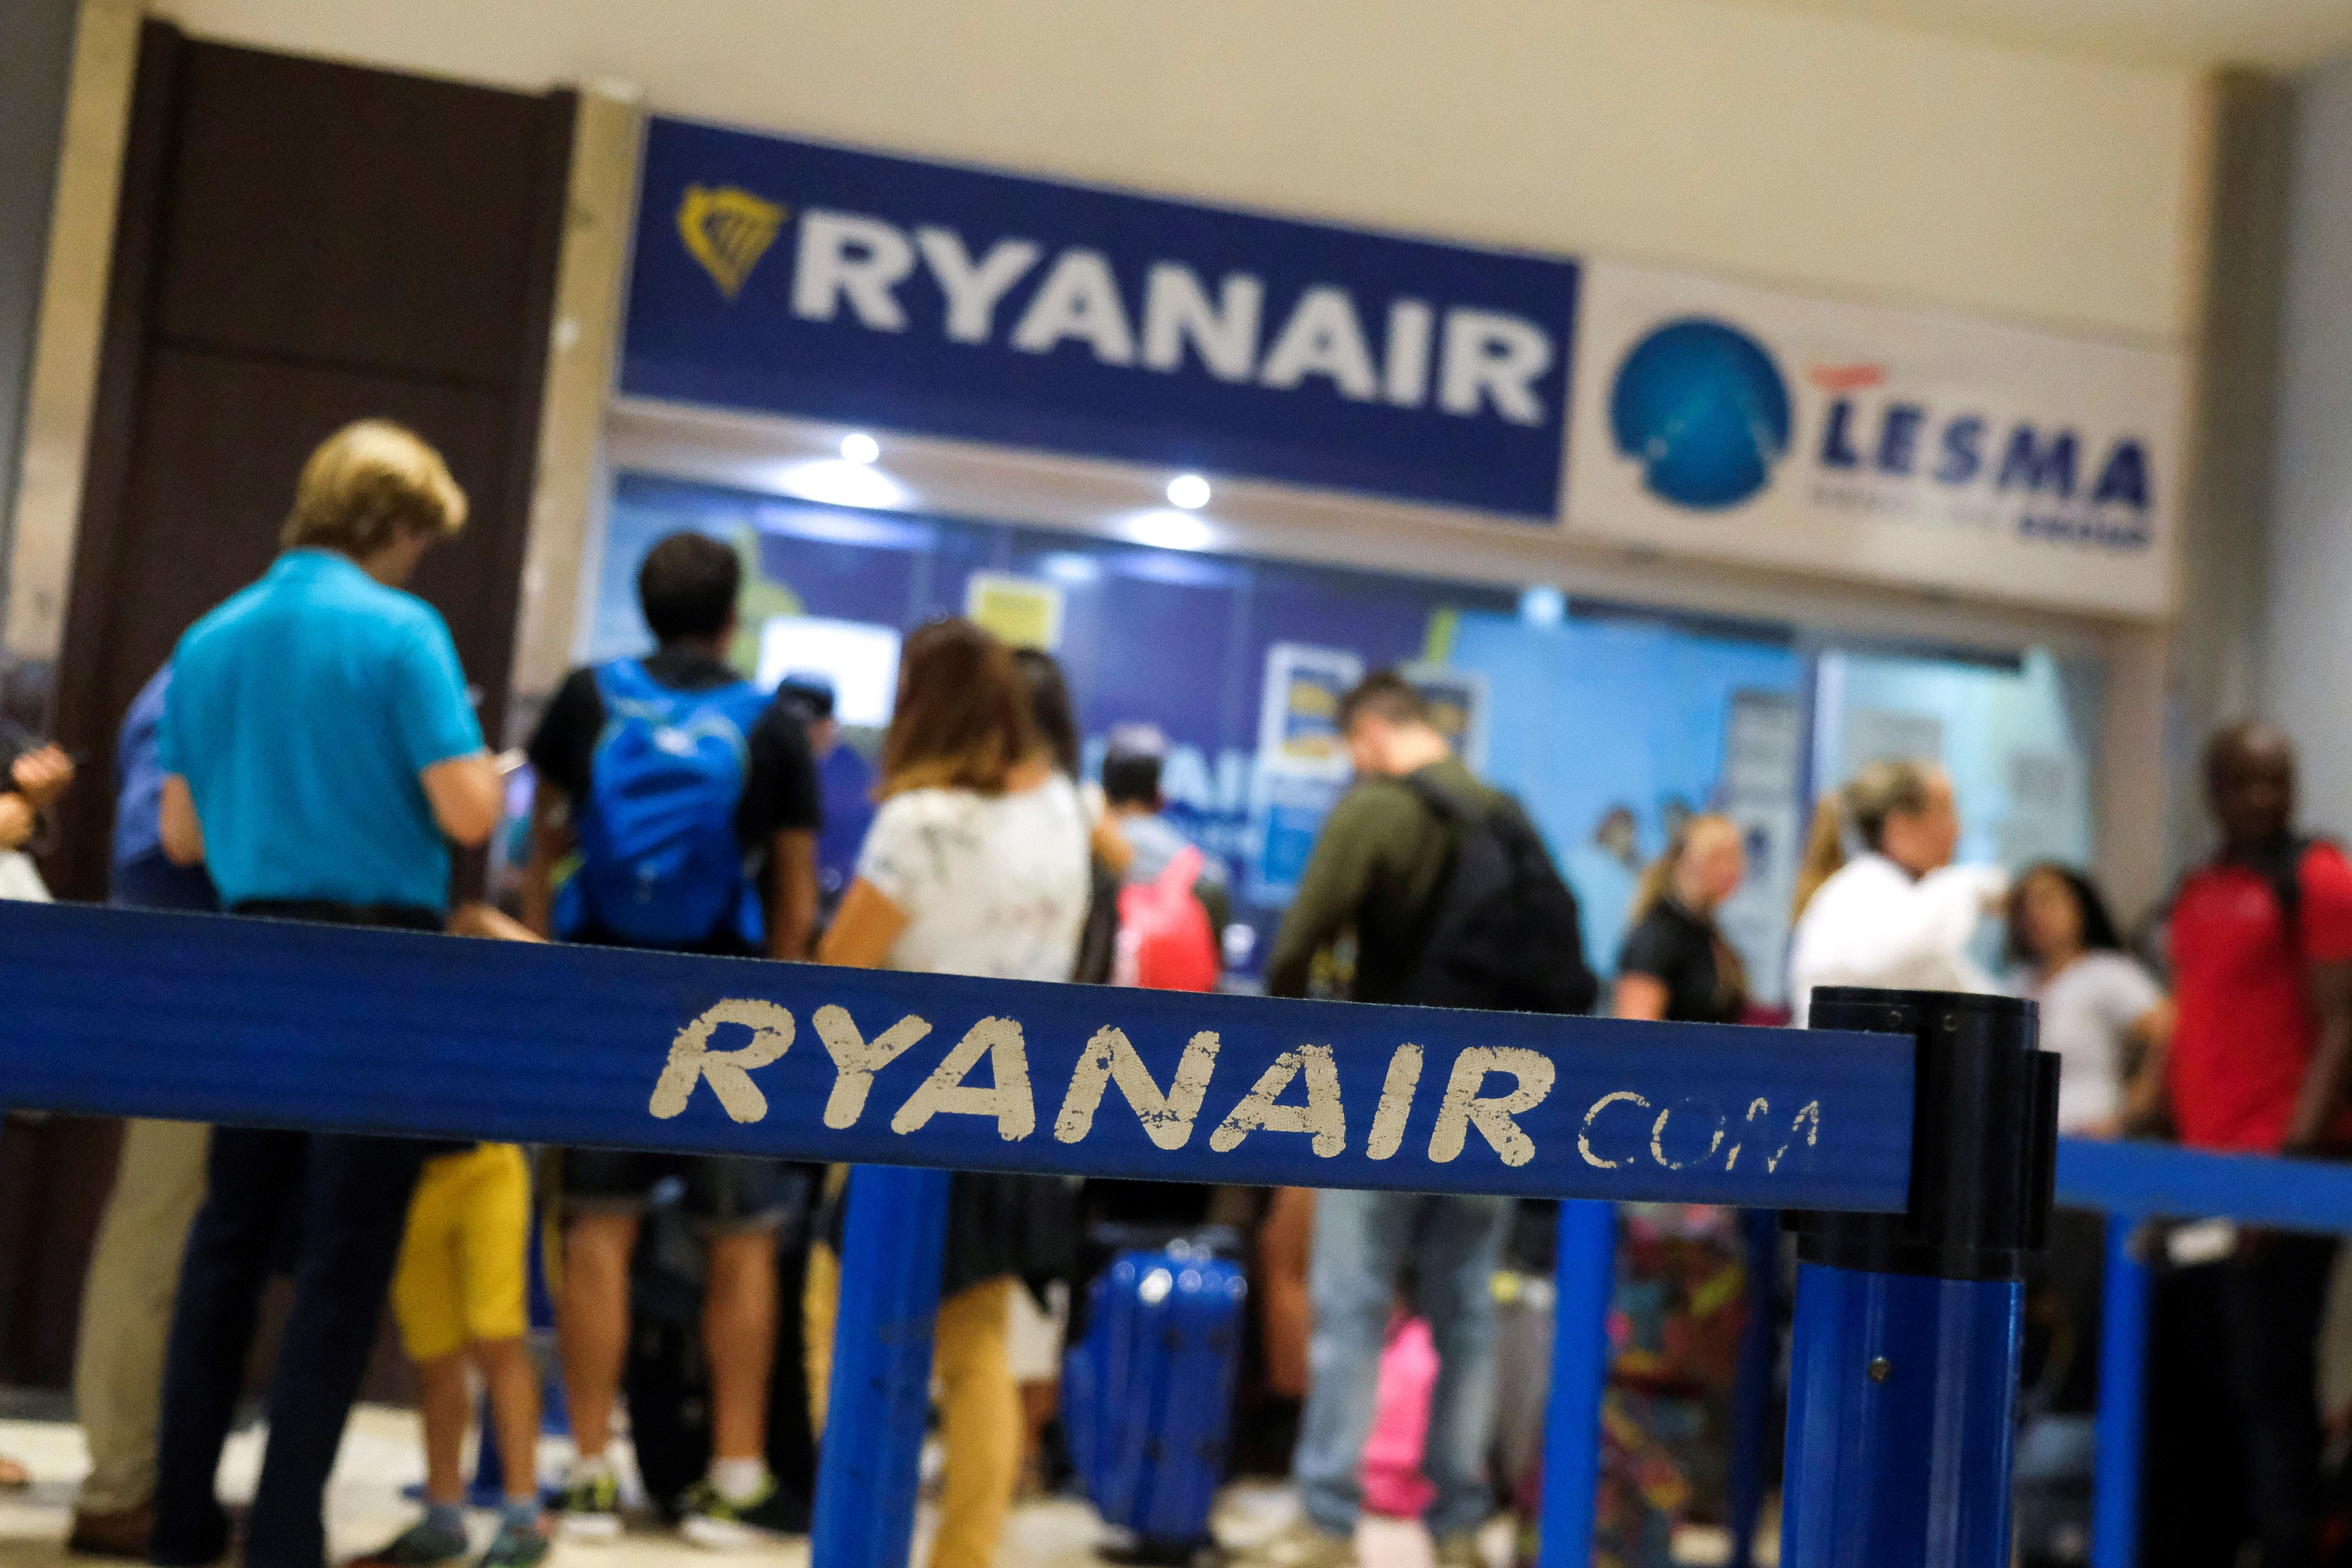 Ryanair Passengers Stranded At Check-In After Airline Breaks Pre-Strike